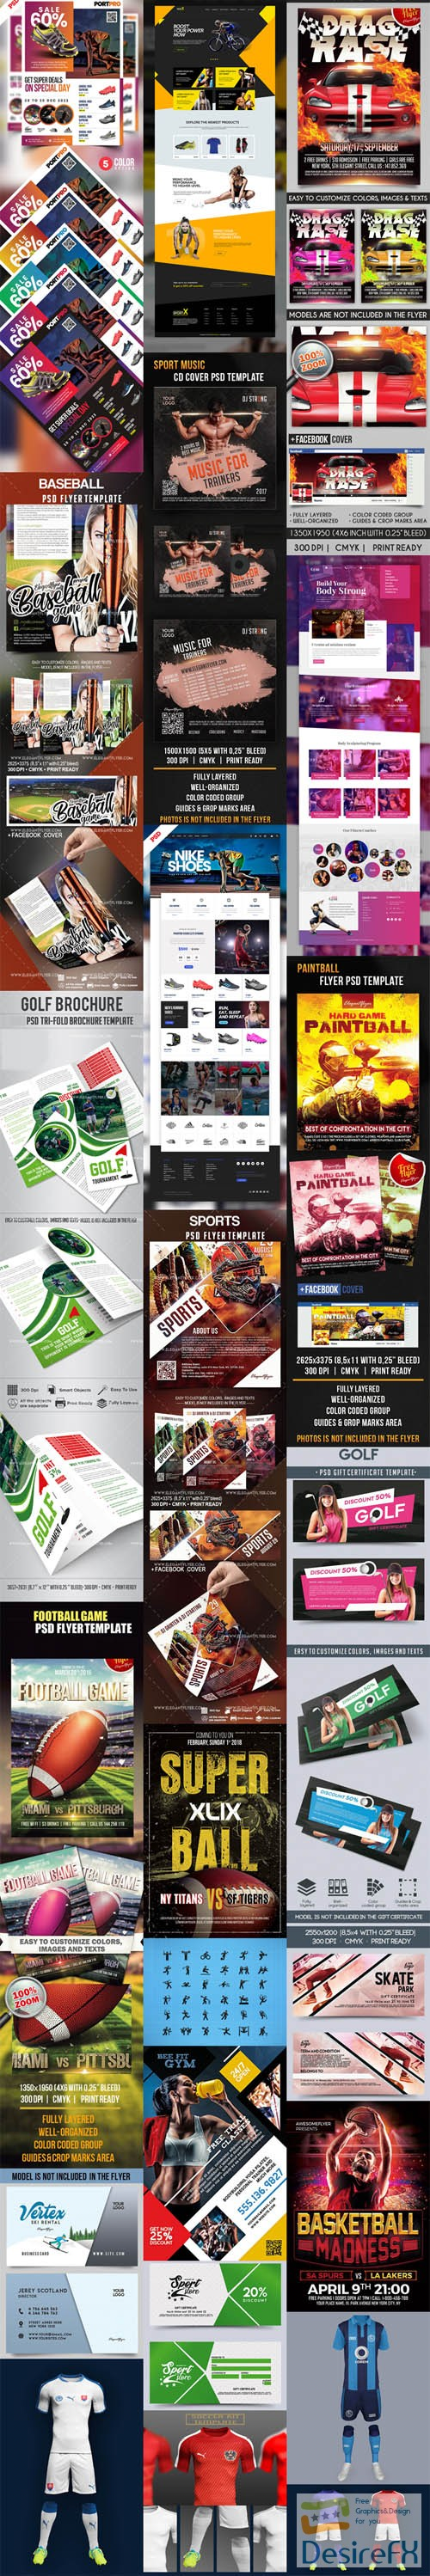 layered-psd - Different & Exclusive PSD Templates for Sport